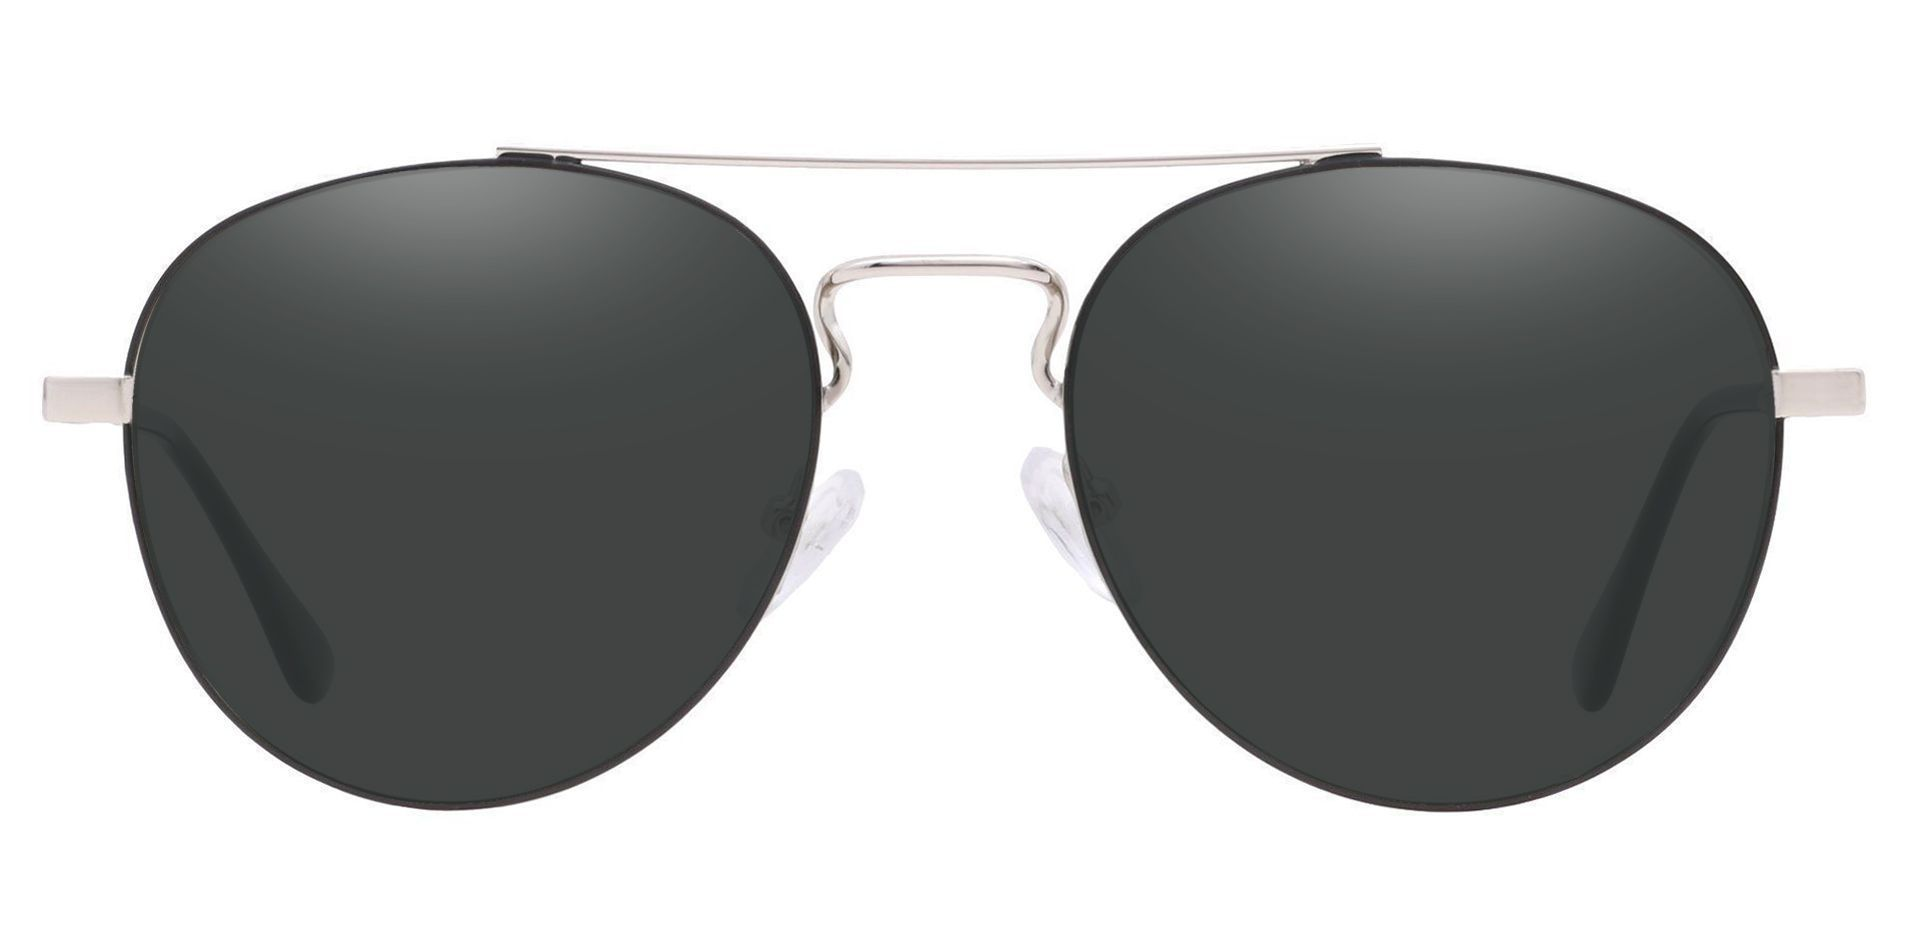 Trapp Aviator Single Vision Sunglasses - Gray Frame With Gray Lenses